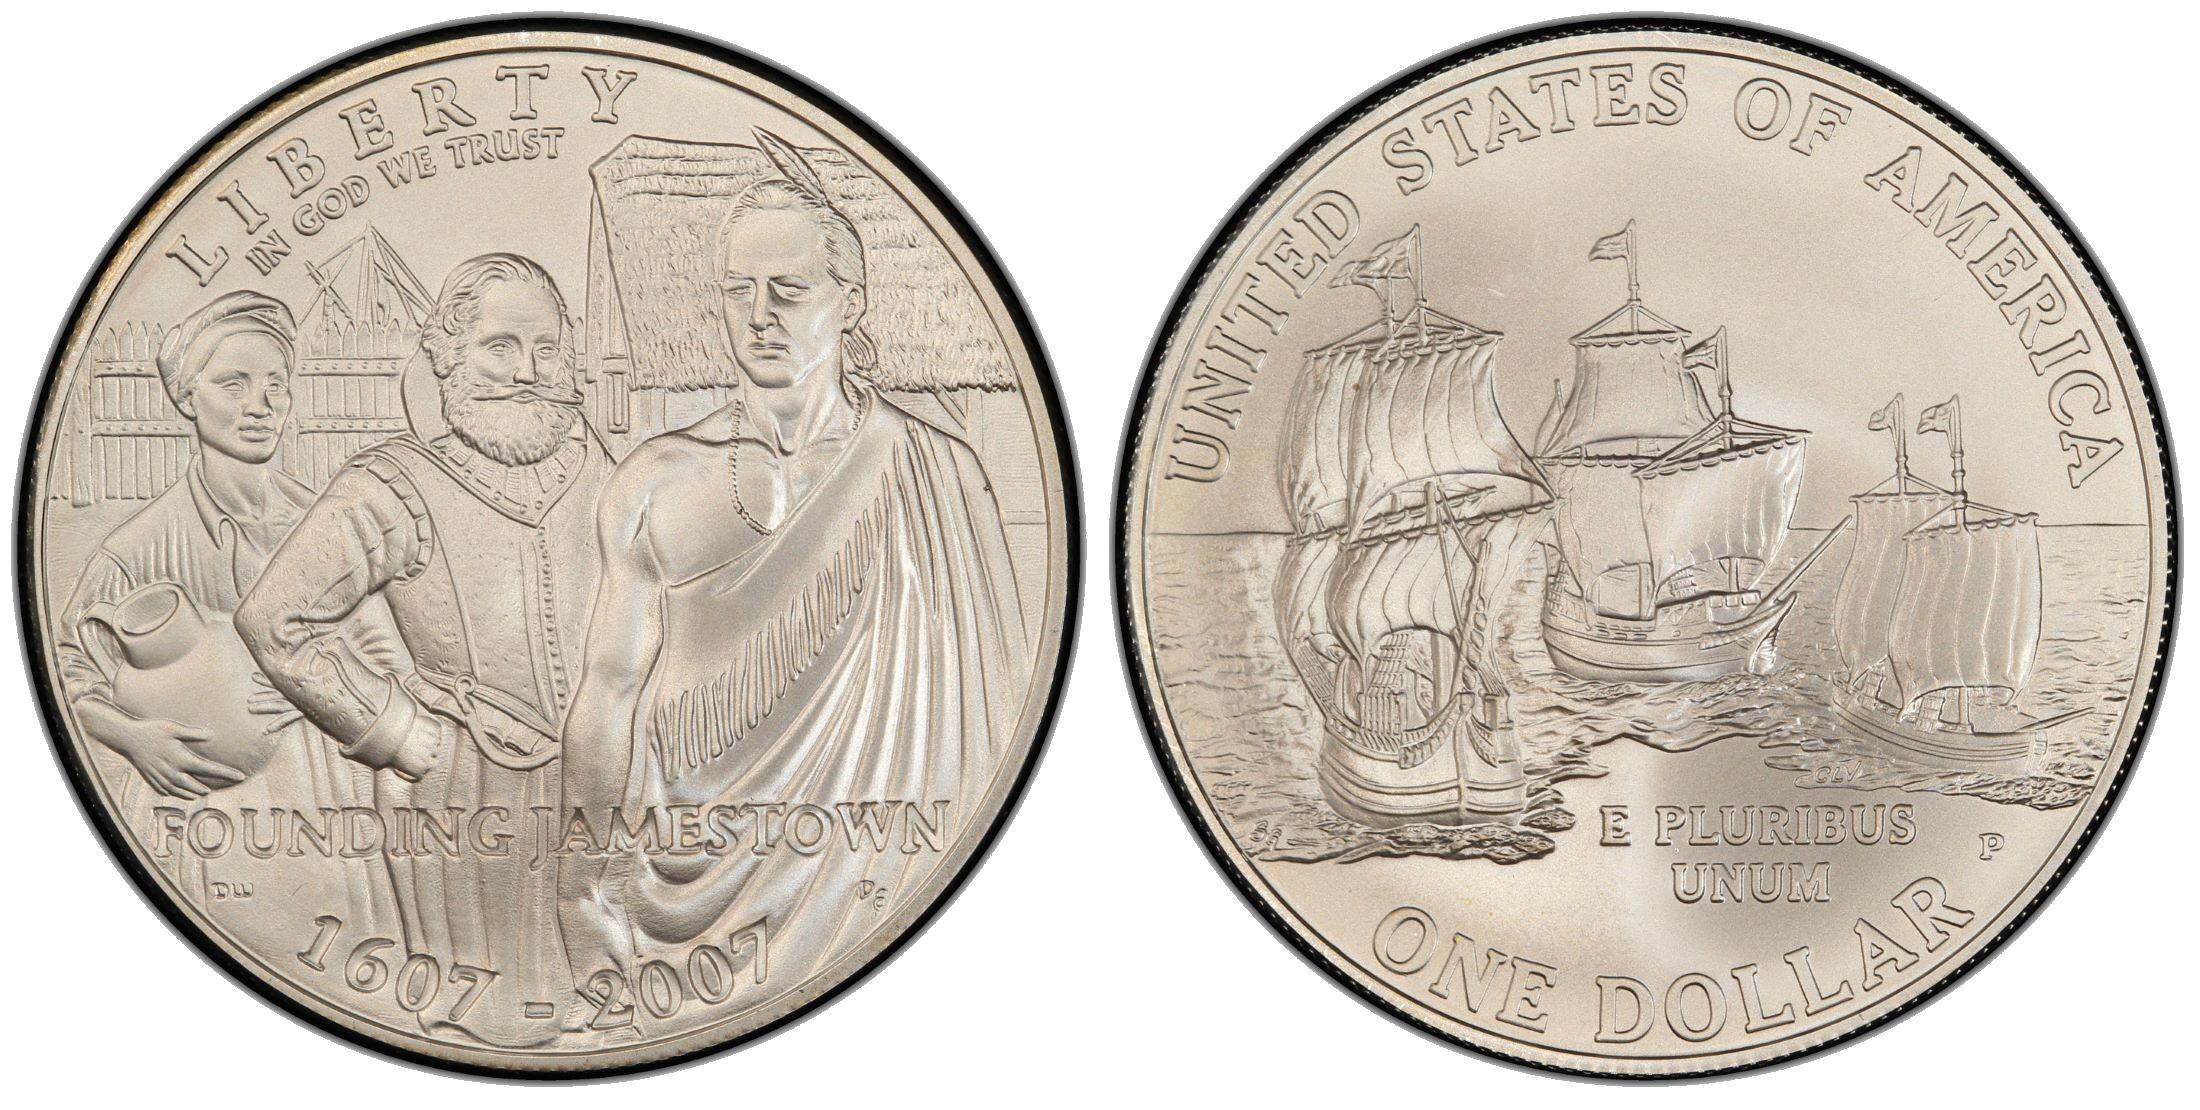 Commemorative $1 coin marking the 400th anniversary of the Jamestown settlement, issued by the U.S. Mint in 2007.